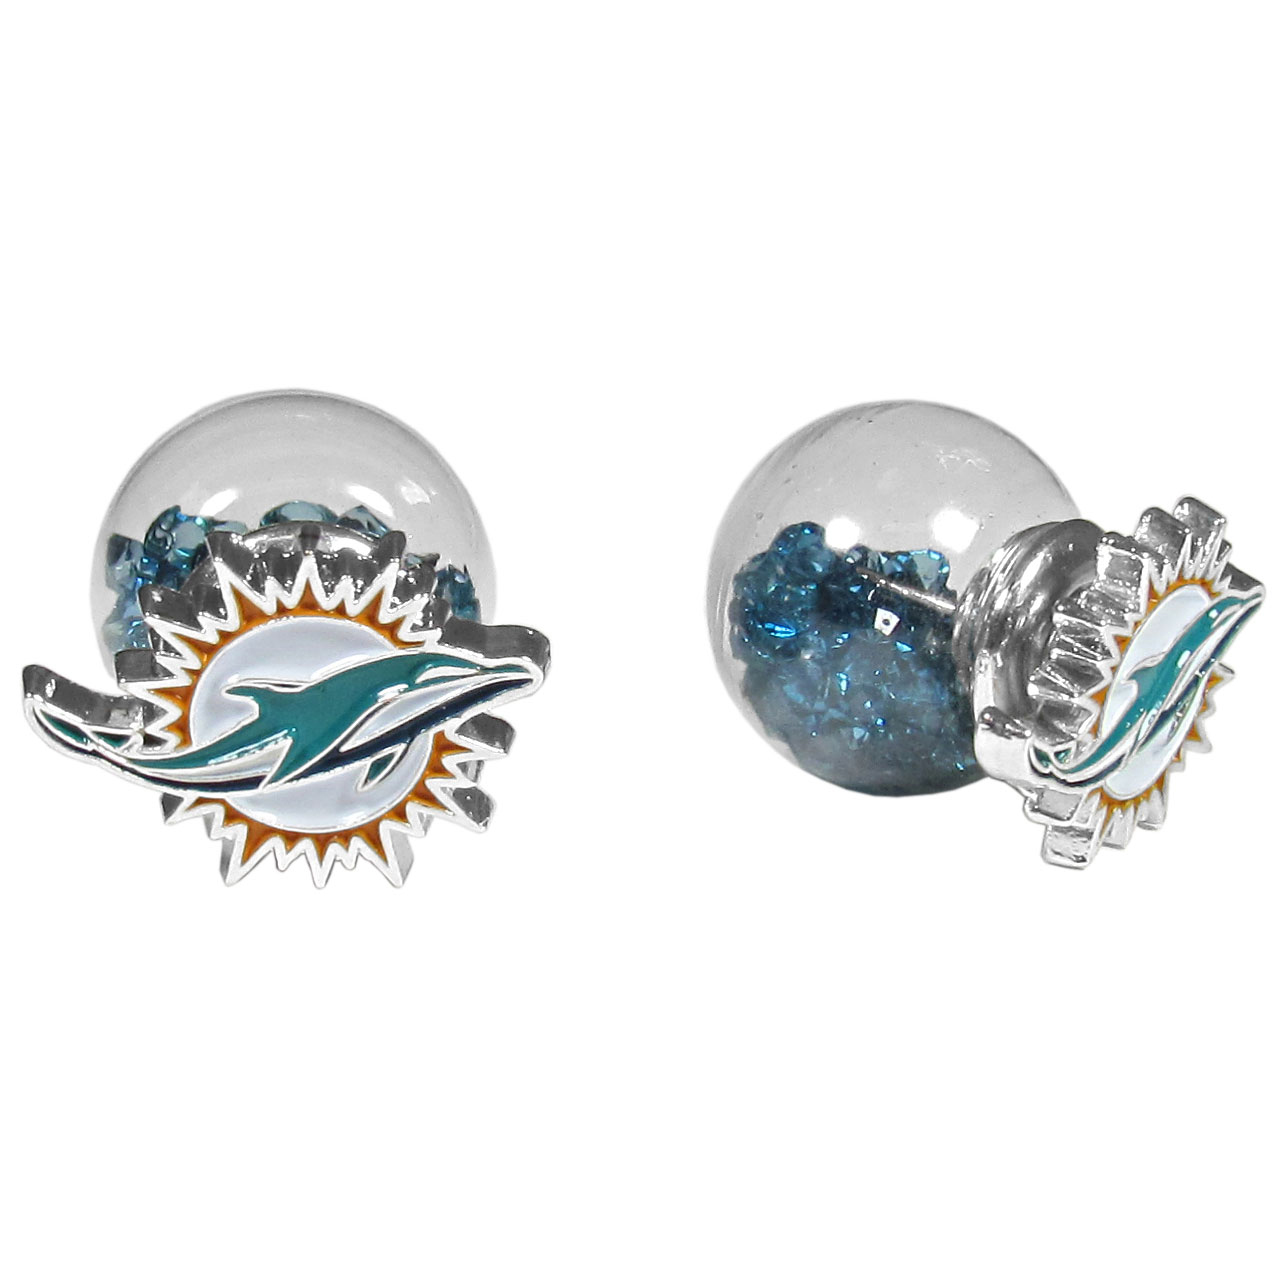 Miami Dolphins Front/Back Earrings - Get in on one of the most popular trends in jewelry, front and back earrings! This must-have style is all of over the red carpets and we taken this contemporary look and paired it with your love of the Miami Dolphins! The front of the earring is a sporty team logo and the back of these eye-catching earrings is a glass ball filled with colored crystal beads. This piece is perfect for a fashion-forward fan, with bold taste and trend-setting style.